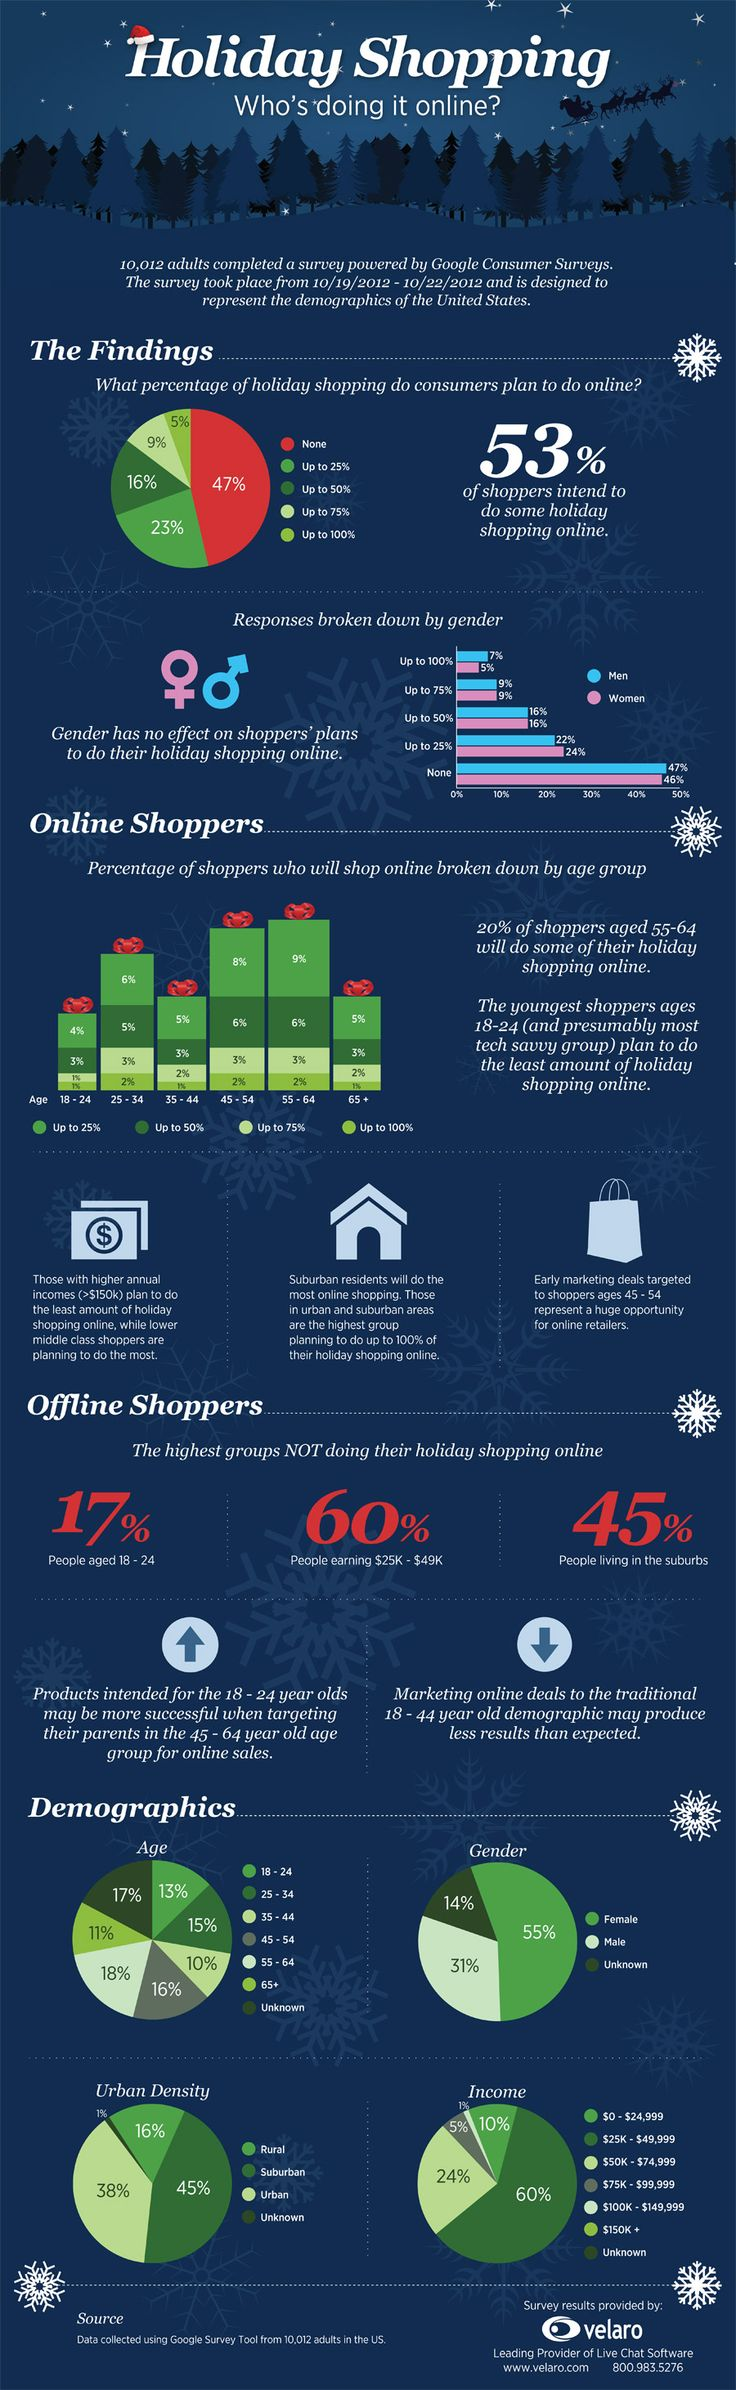 Who shops online the most? Men or Women? Young Adults or Baby Boomers?